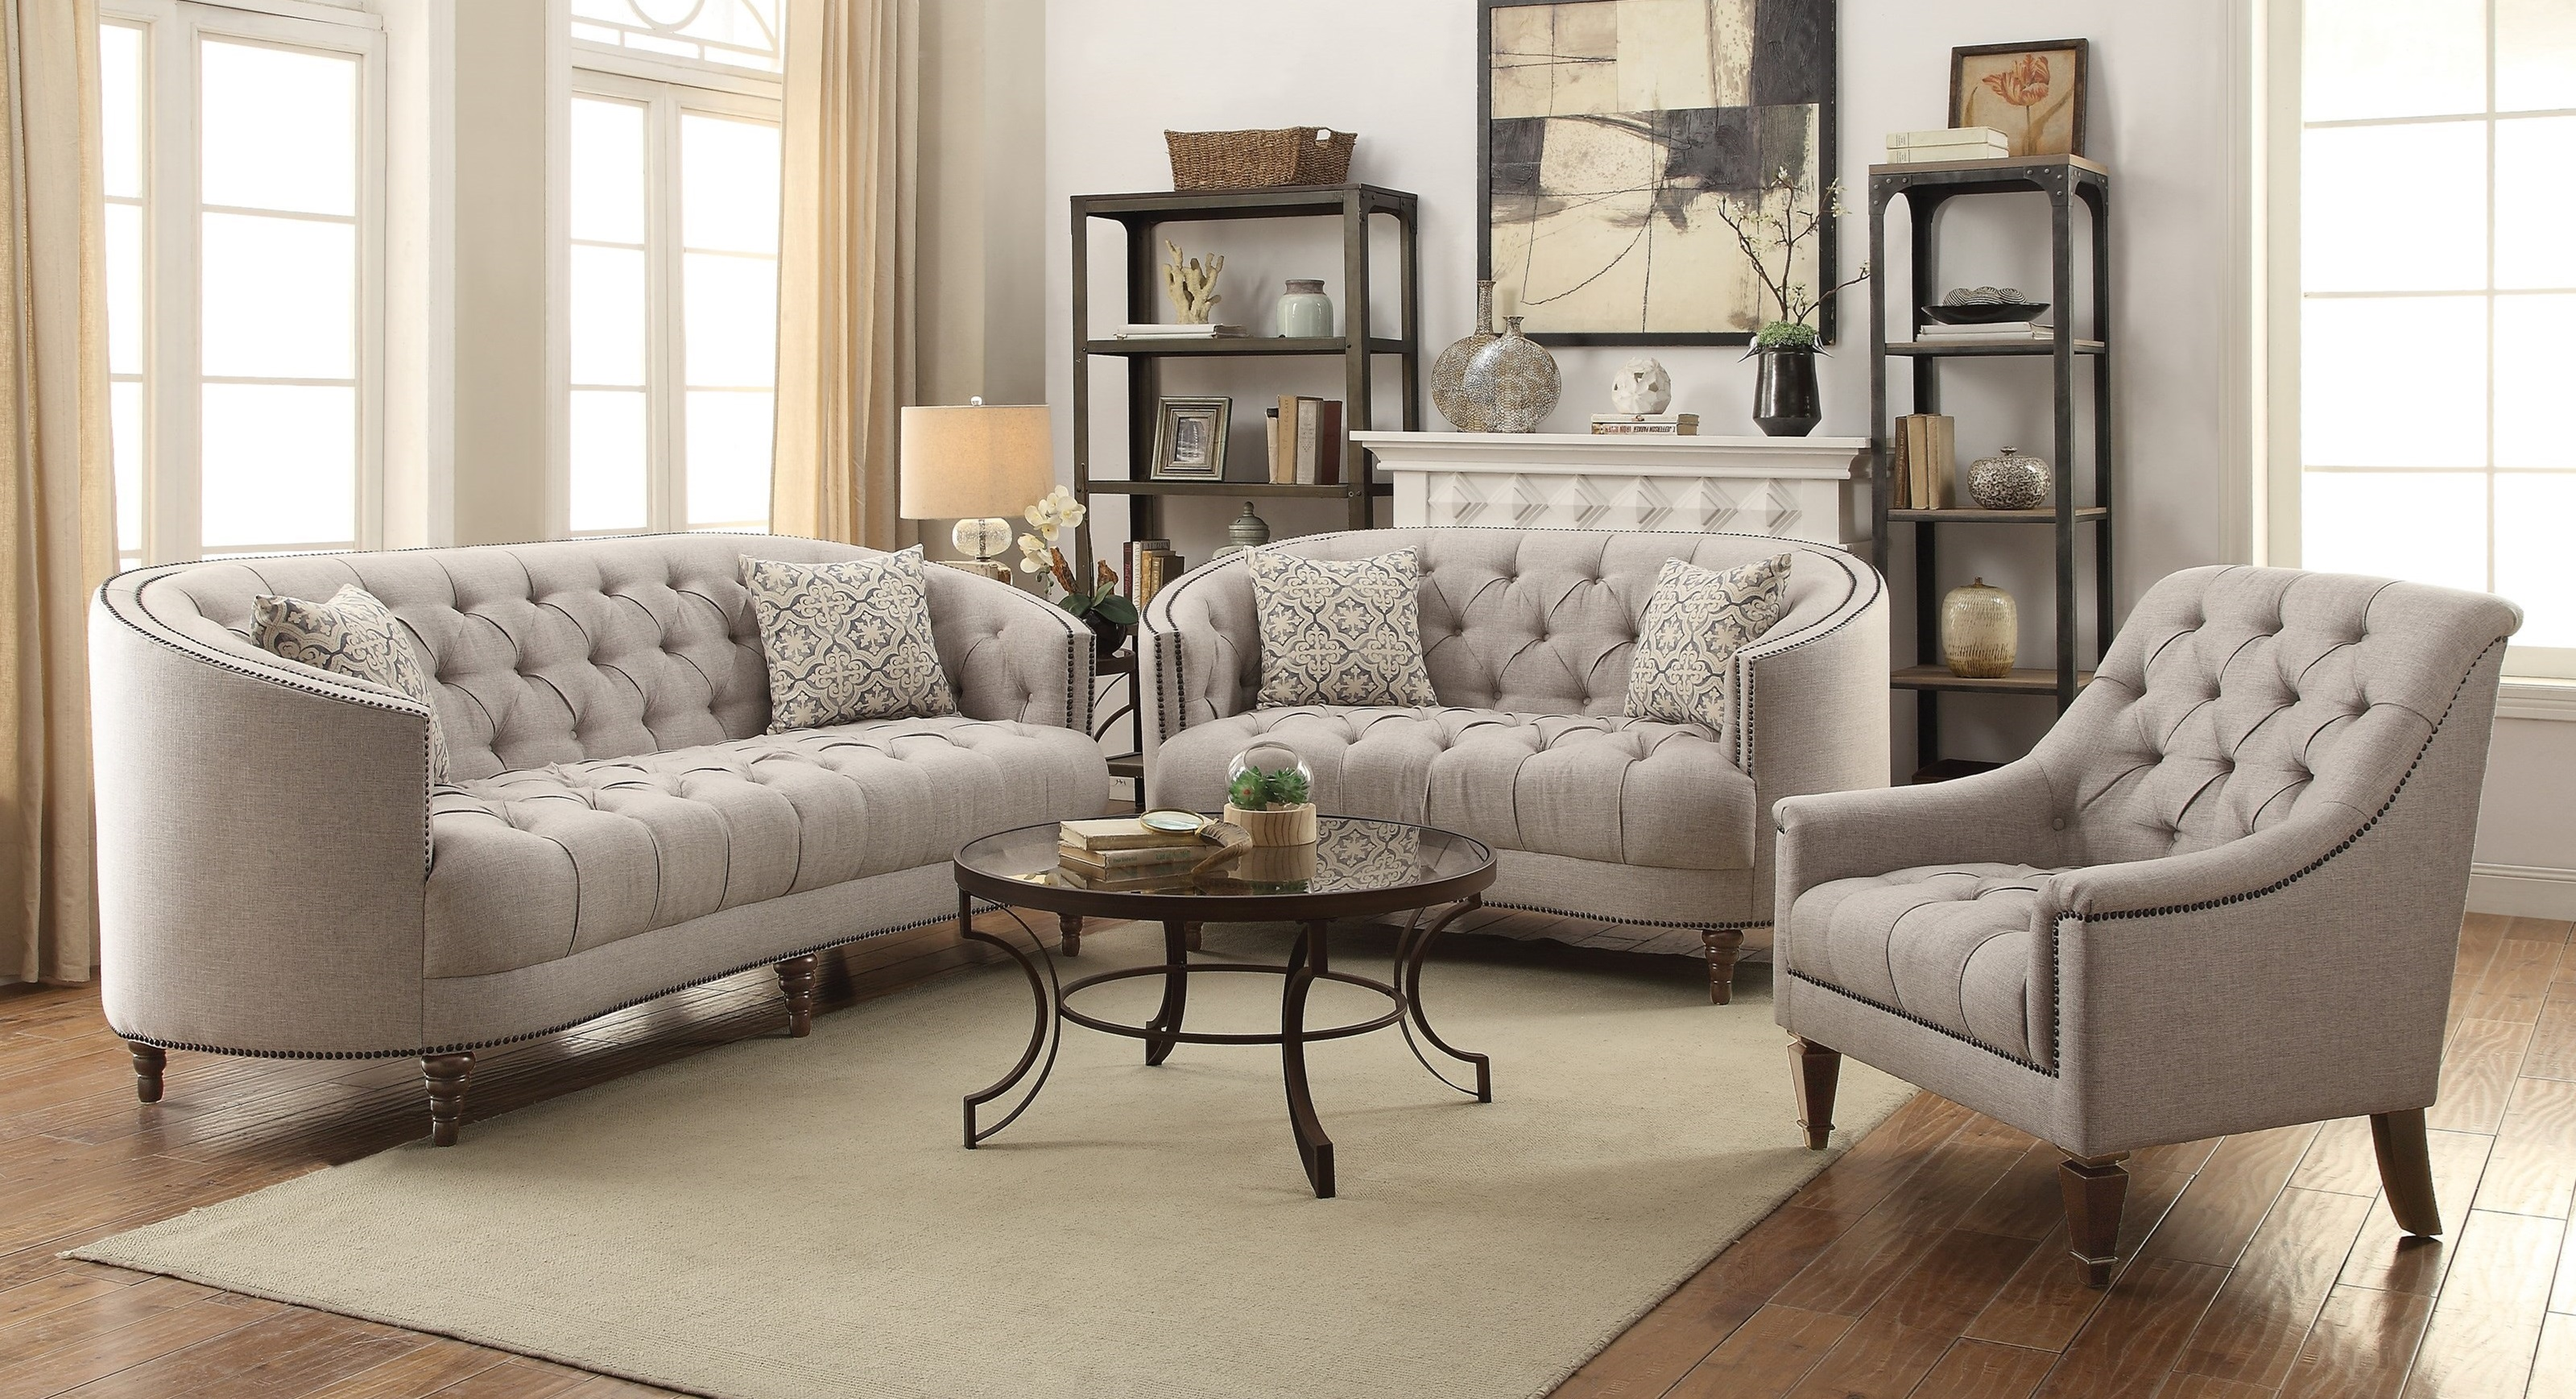 Avonlea Sofa And Chair Set 505641